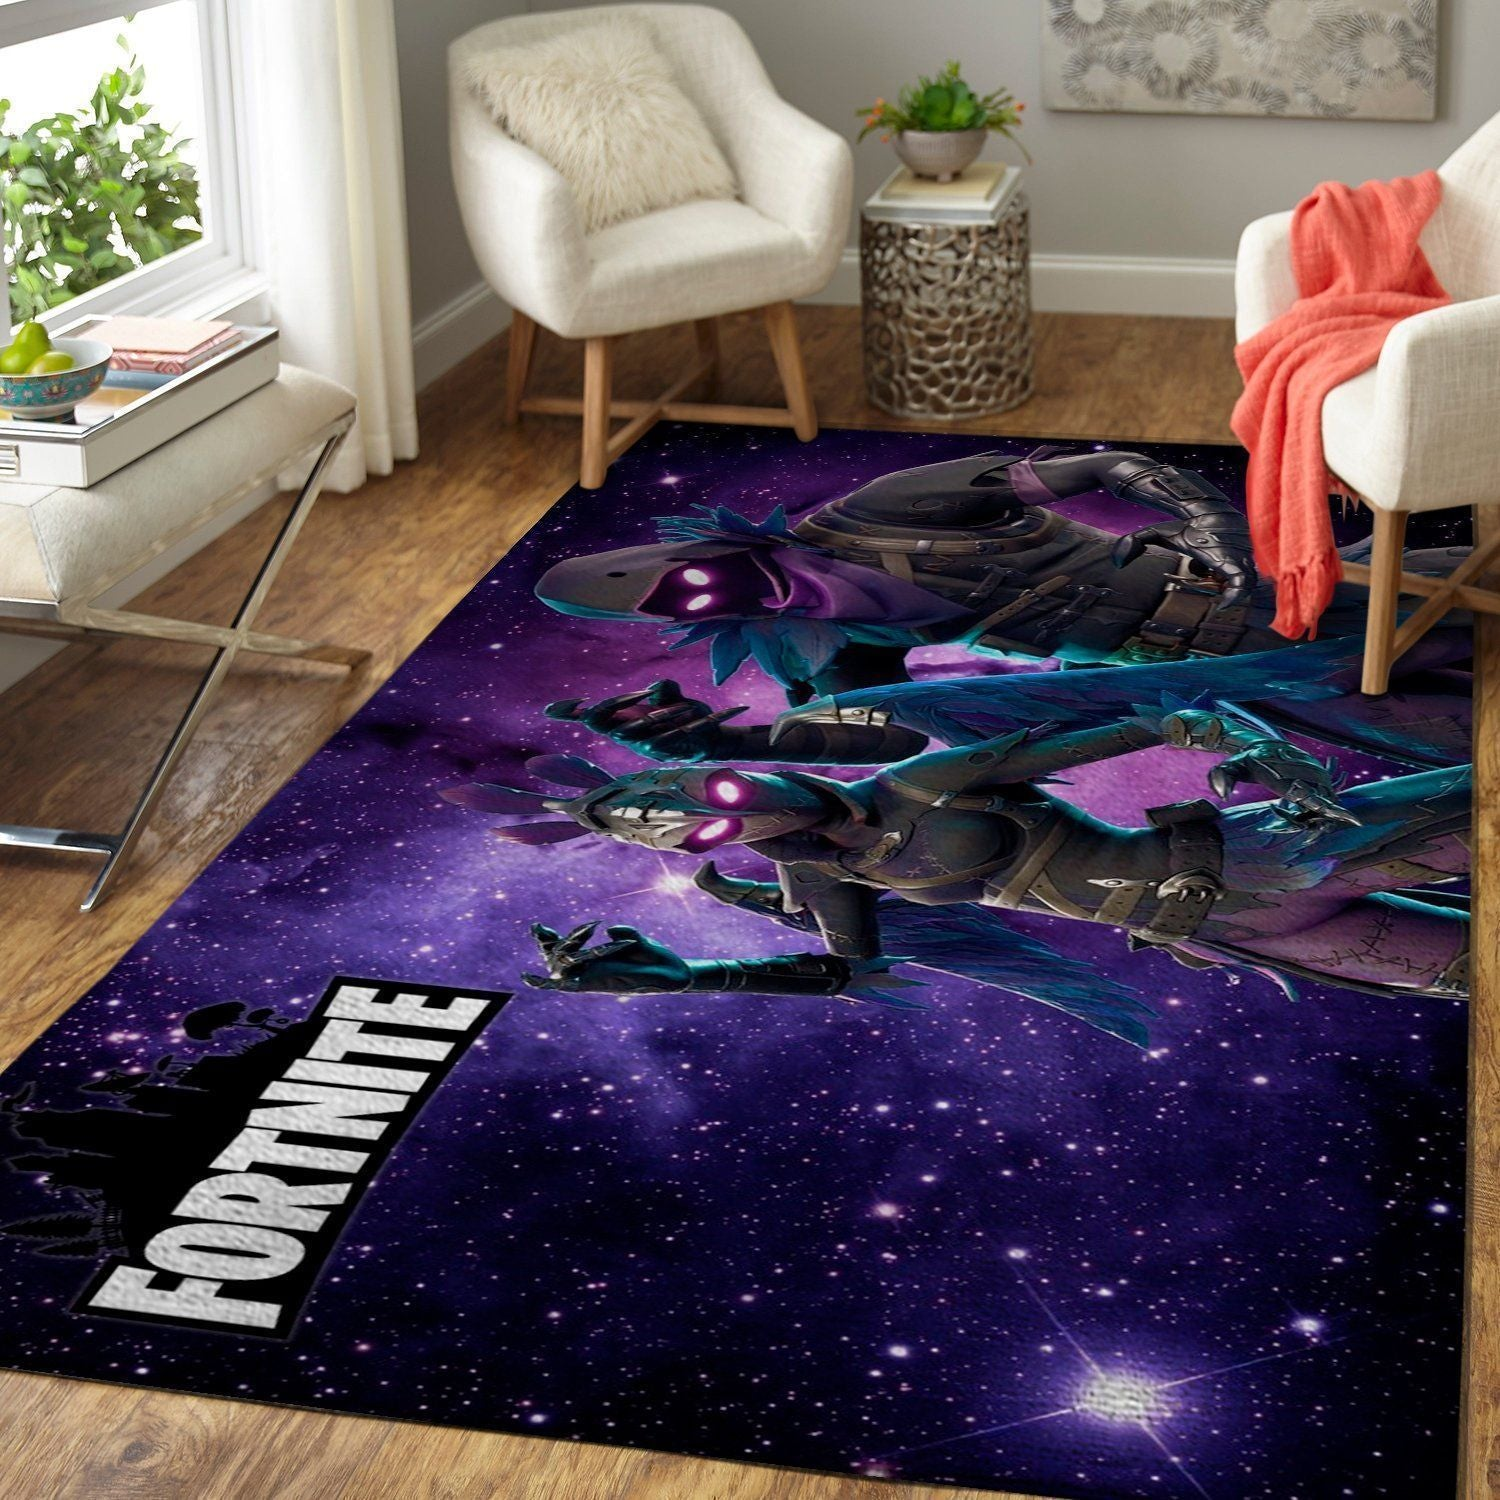 Fortnite Area Rug Video Game Carpet, Gamer Living Room Rugs, Floor Decor F25108